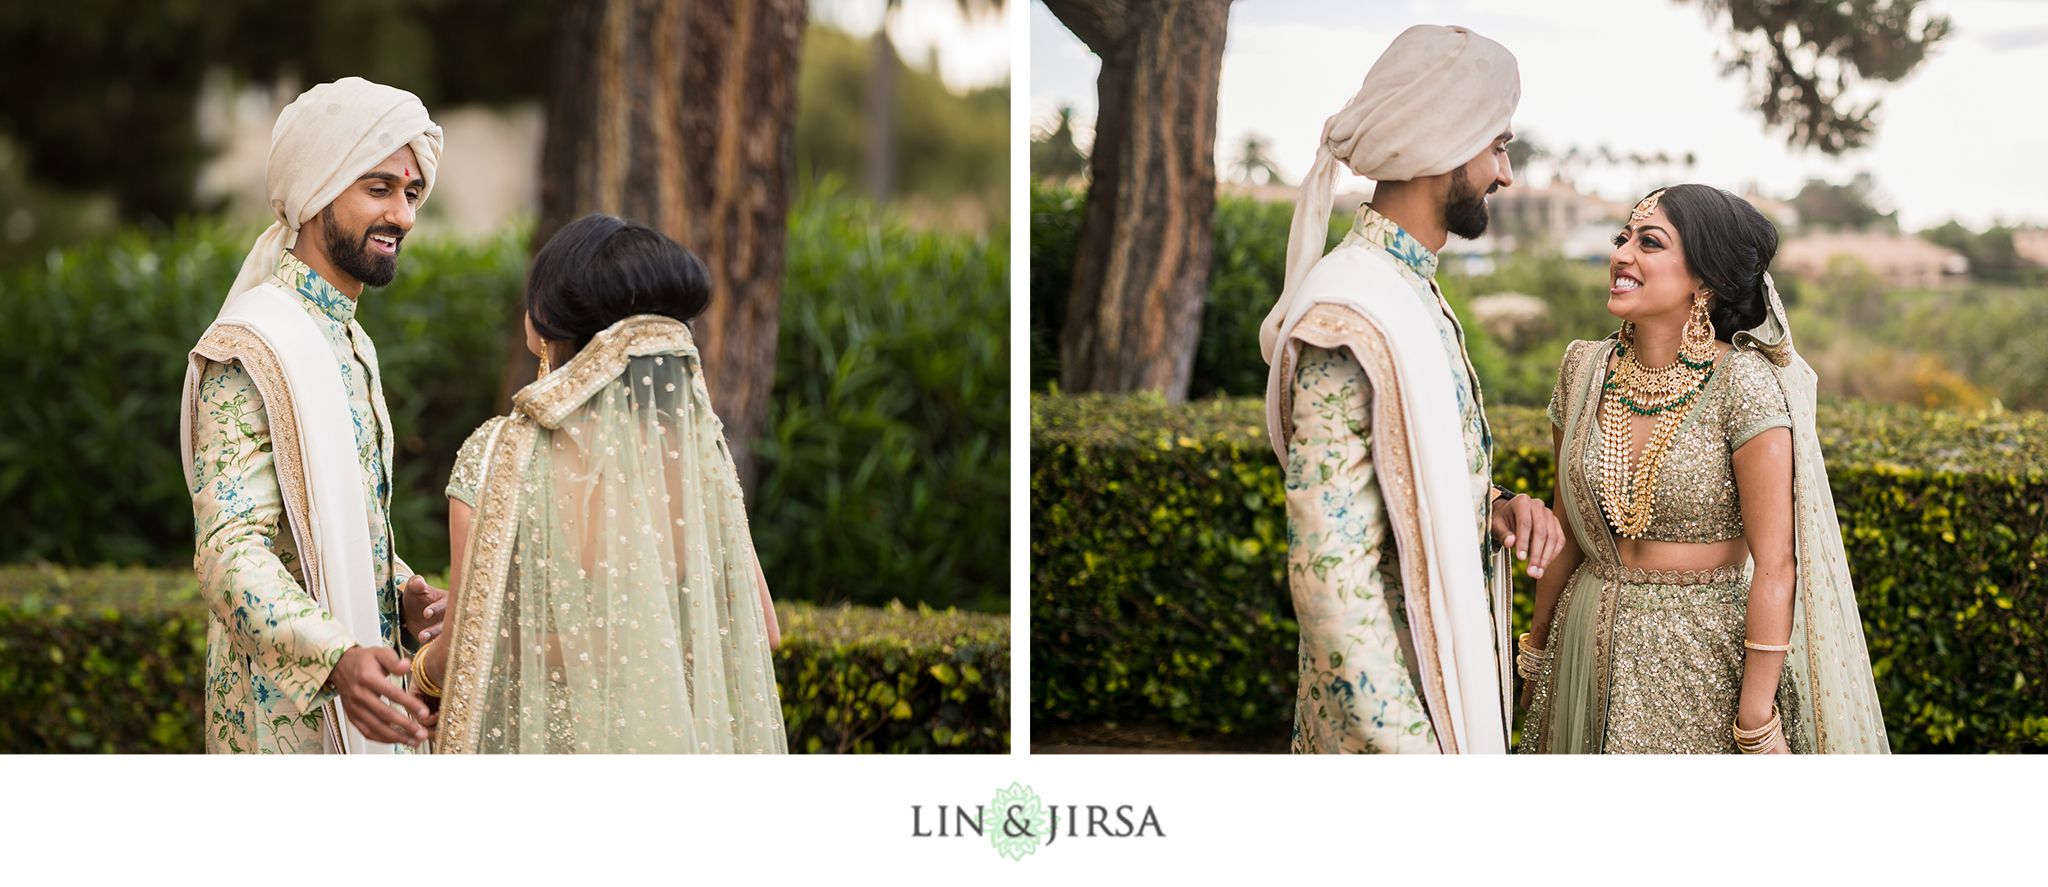 10-pelican-hill-resort-indian-wedding-photographer